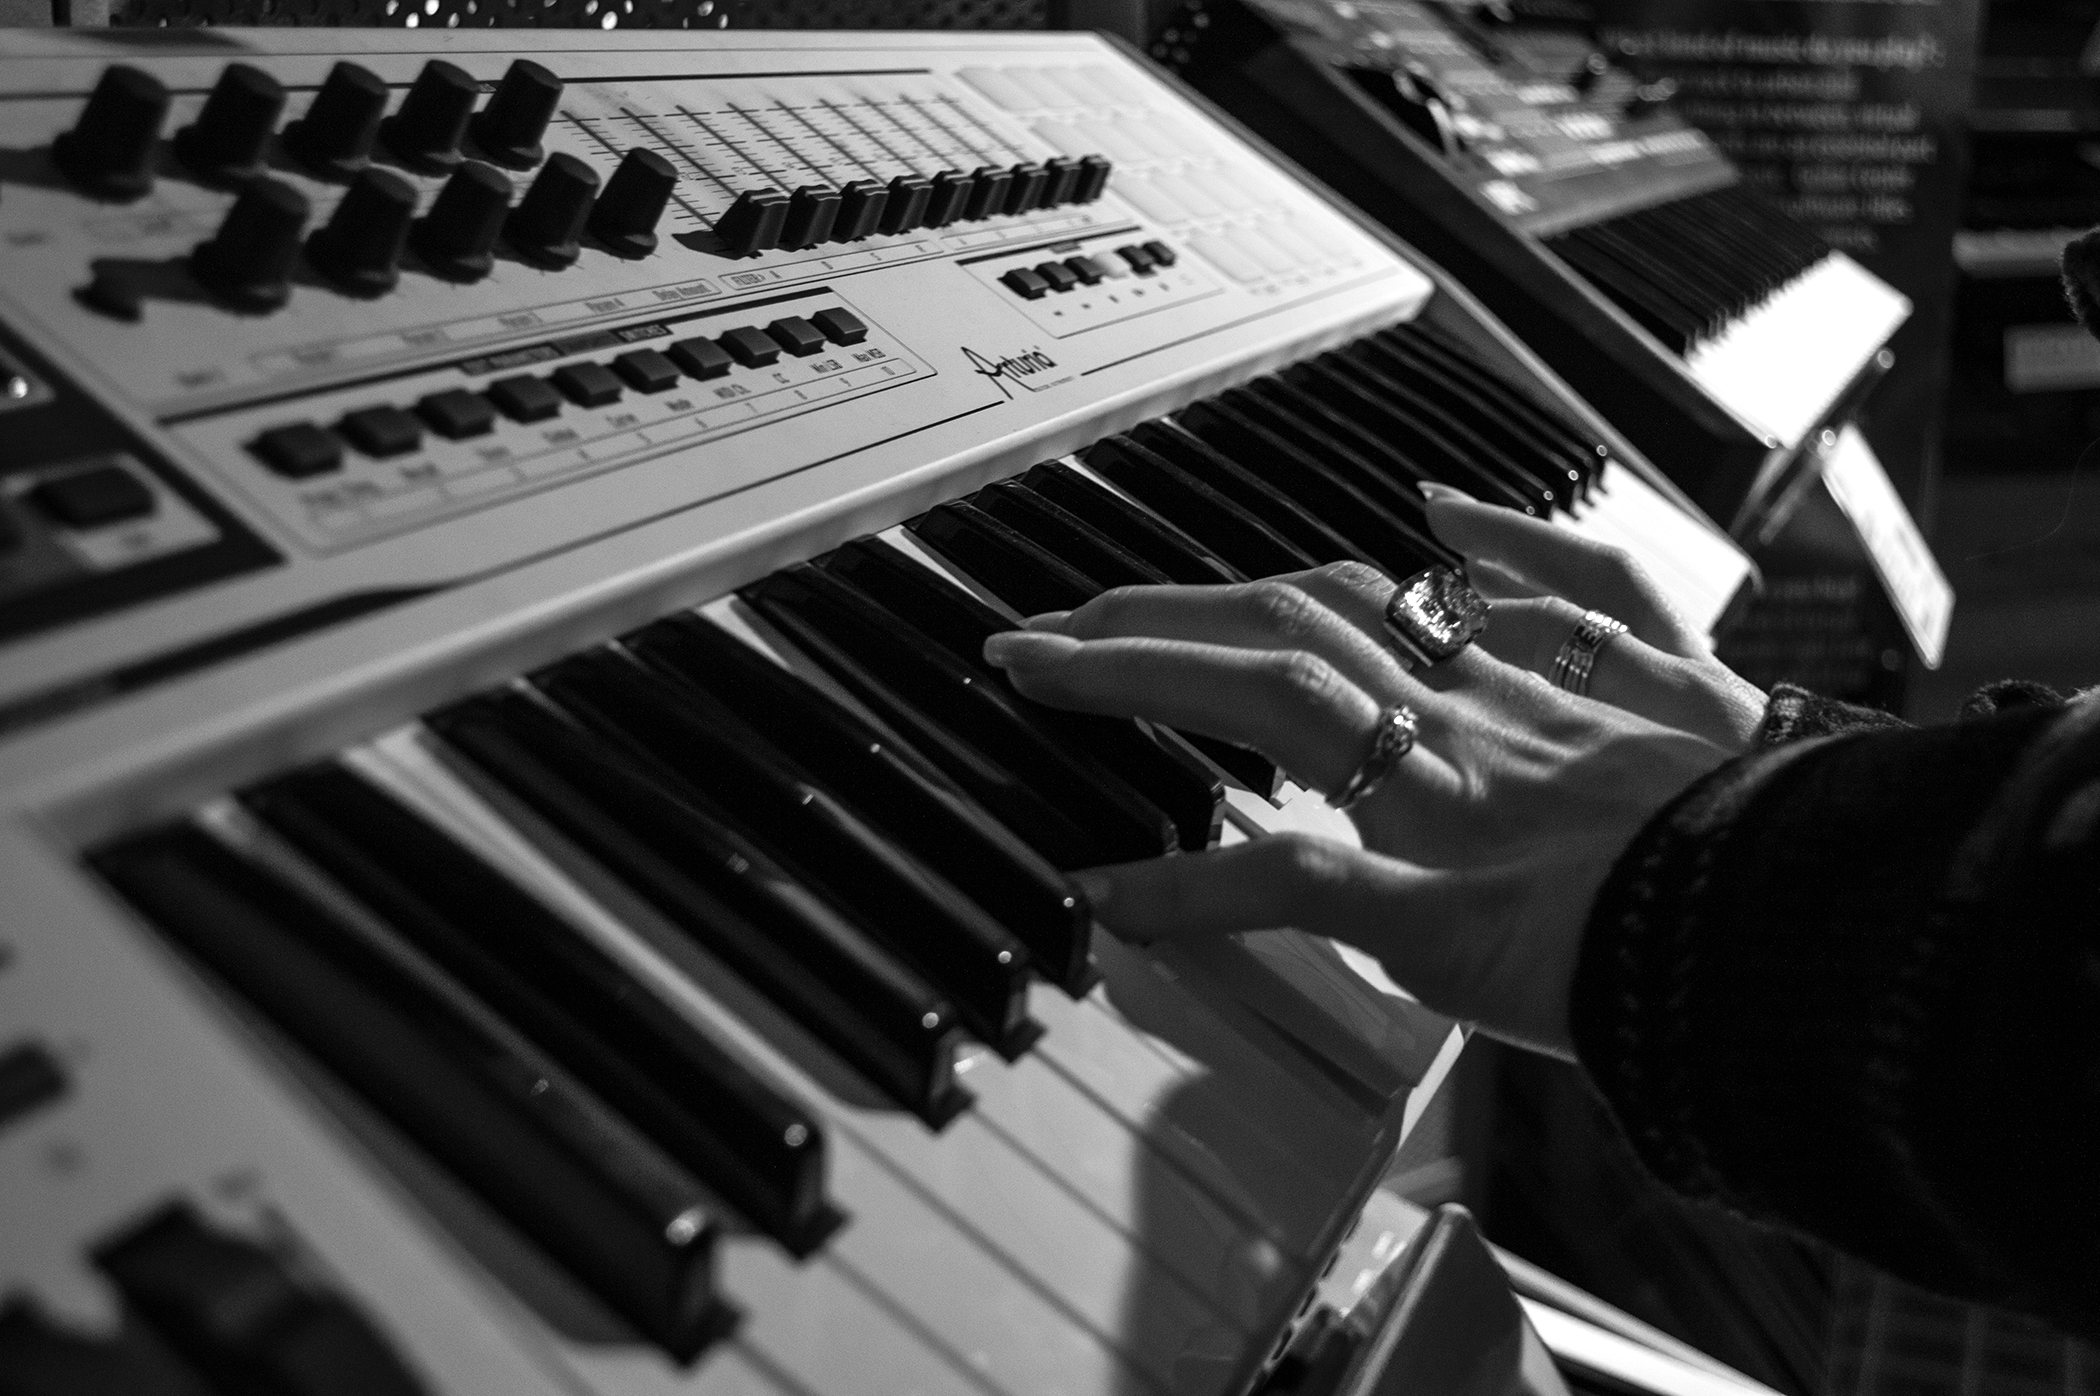 Person Playing Electric Piano in Grayscale Photo · Free ...